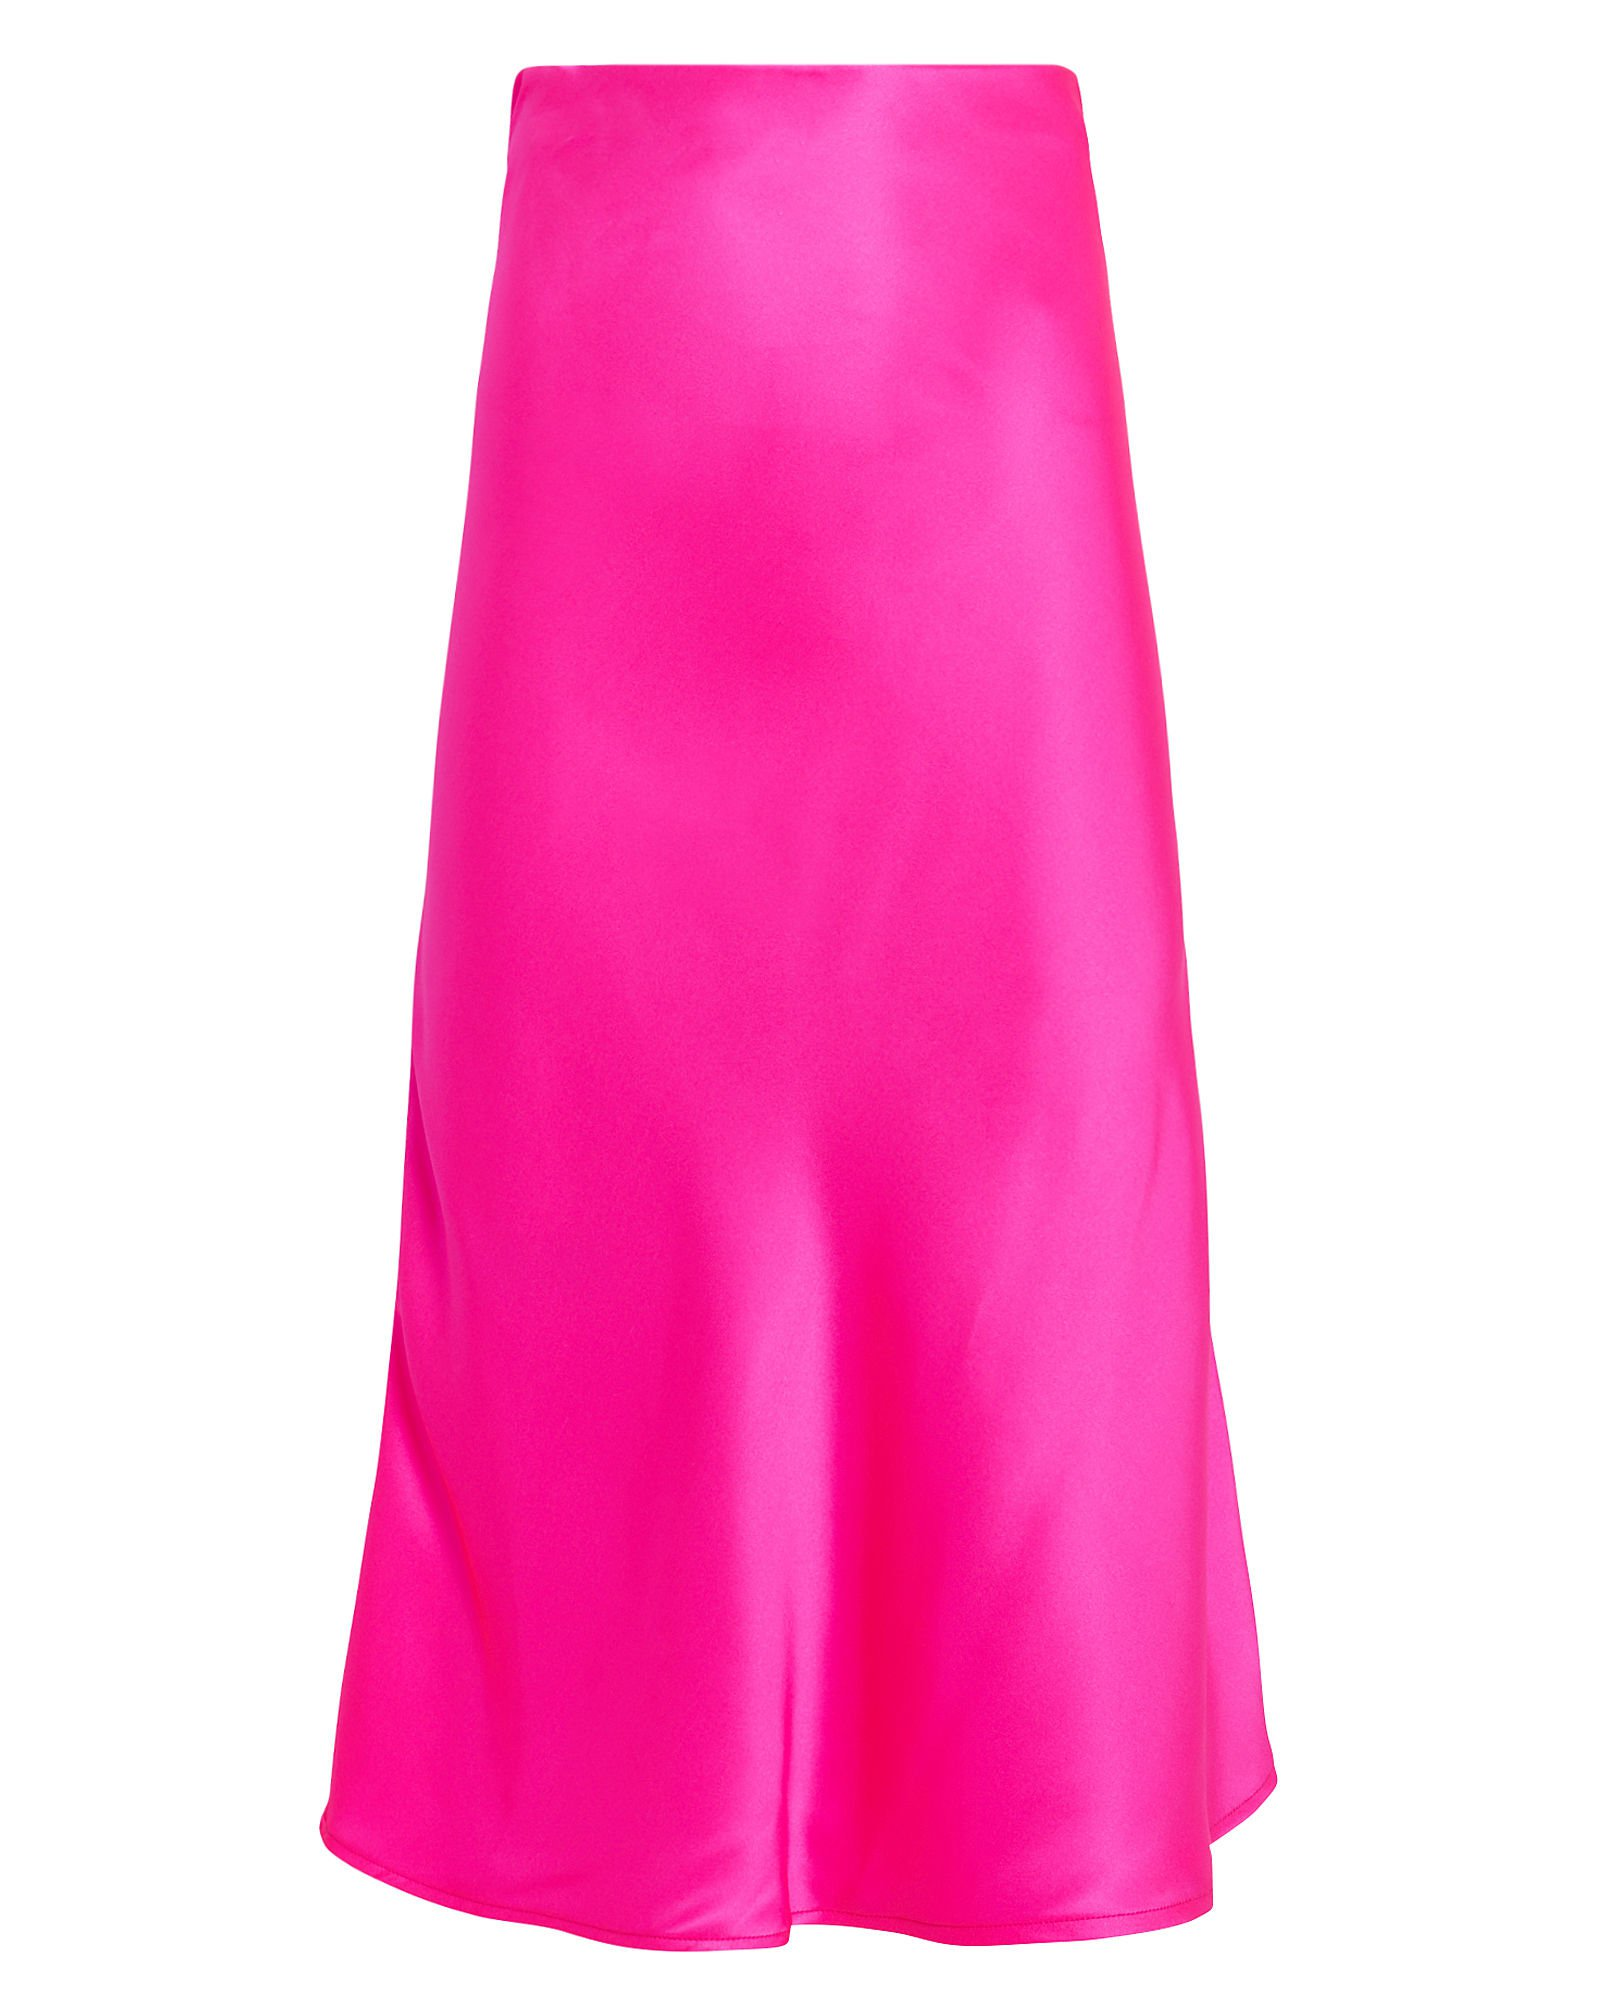 Fuchsia Bias-Cut Silk Skirt